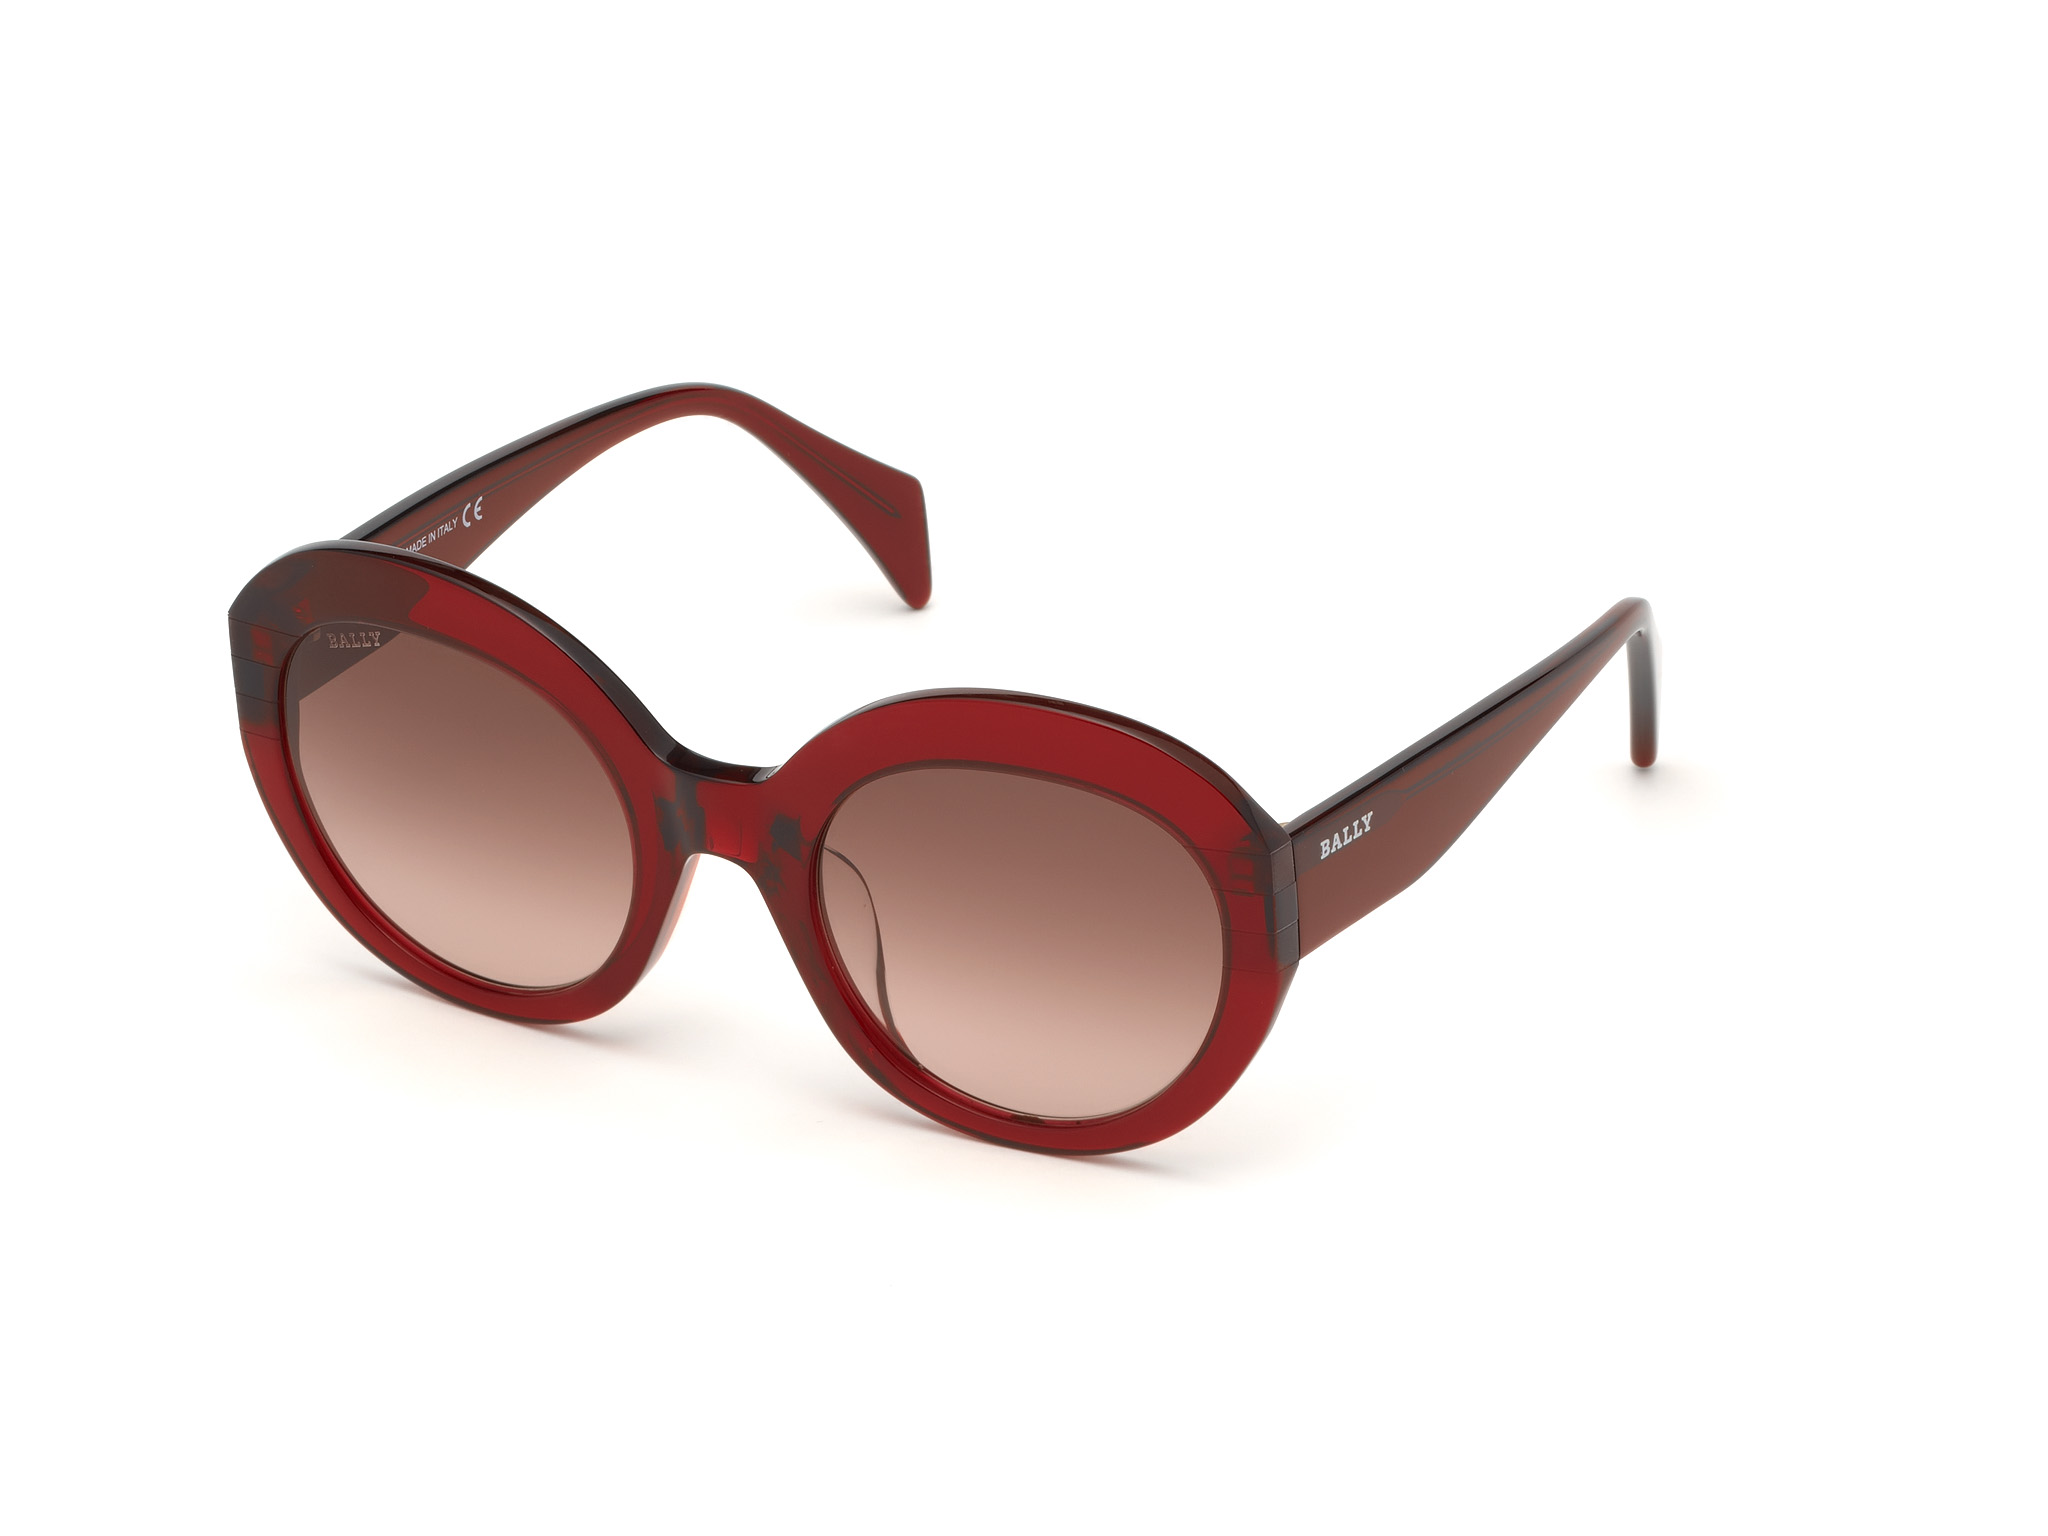 The Vision Council promotes national sunglasses day June 27